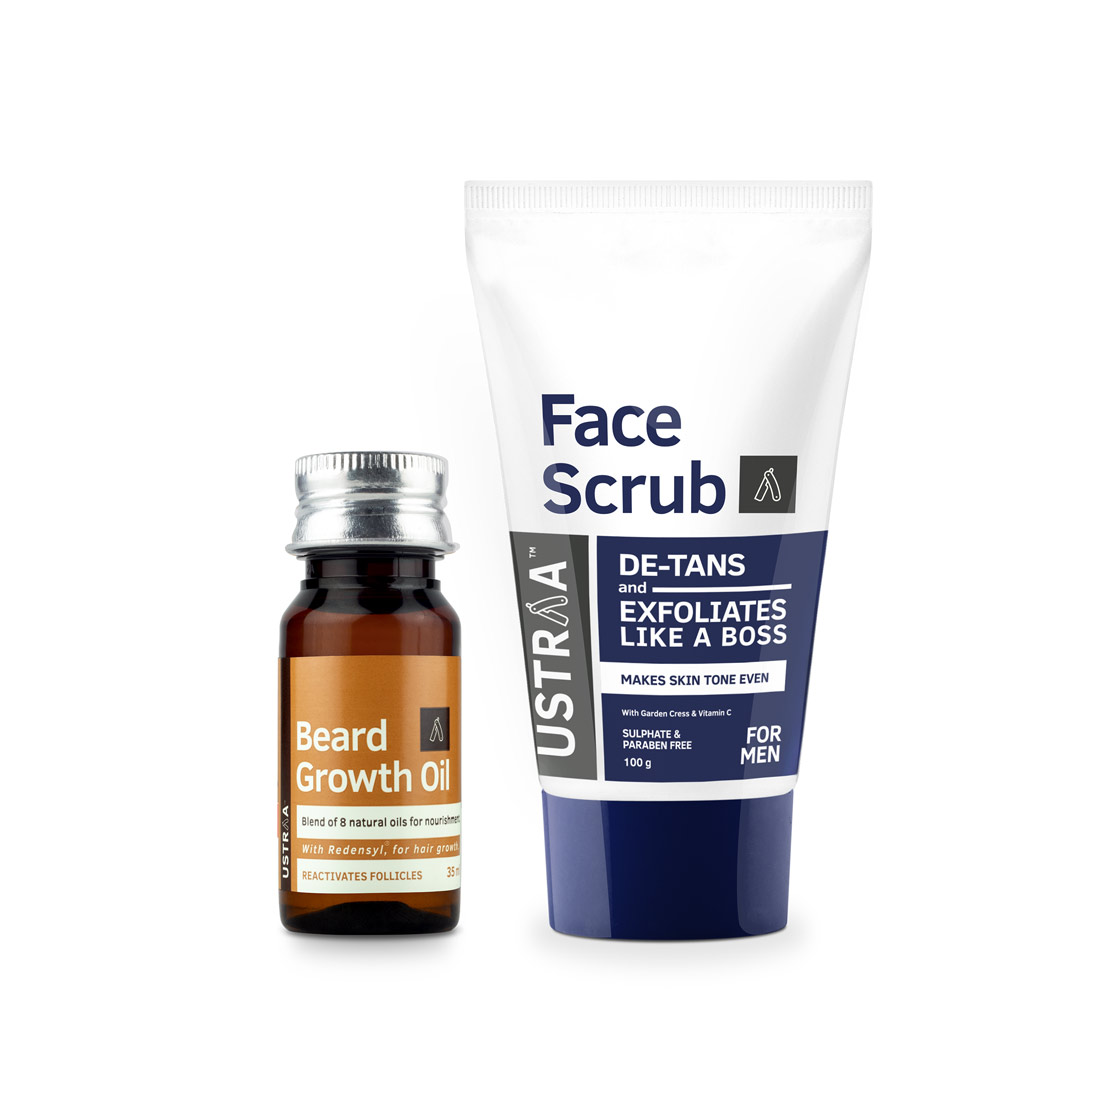 Beard Growth Oil and Face Scrub